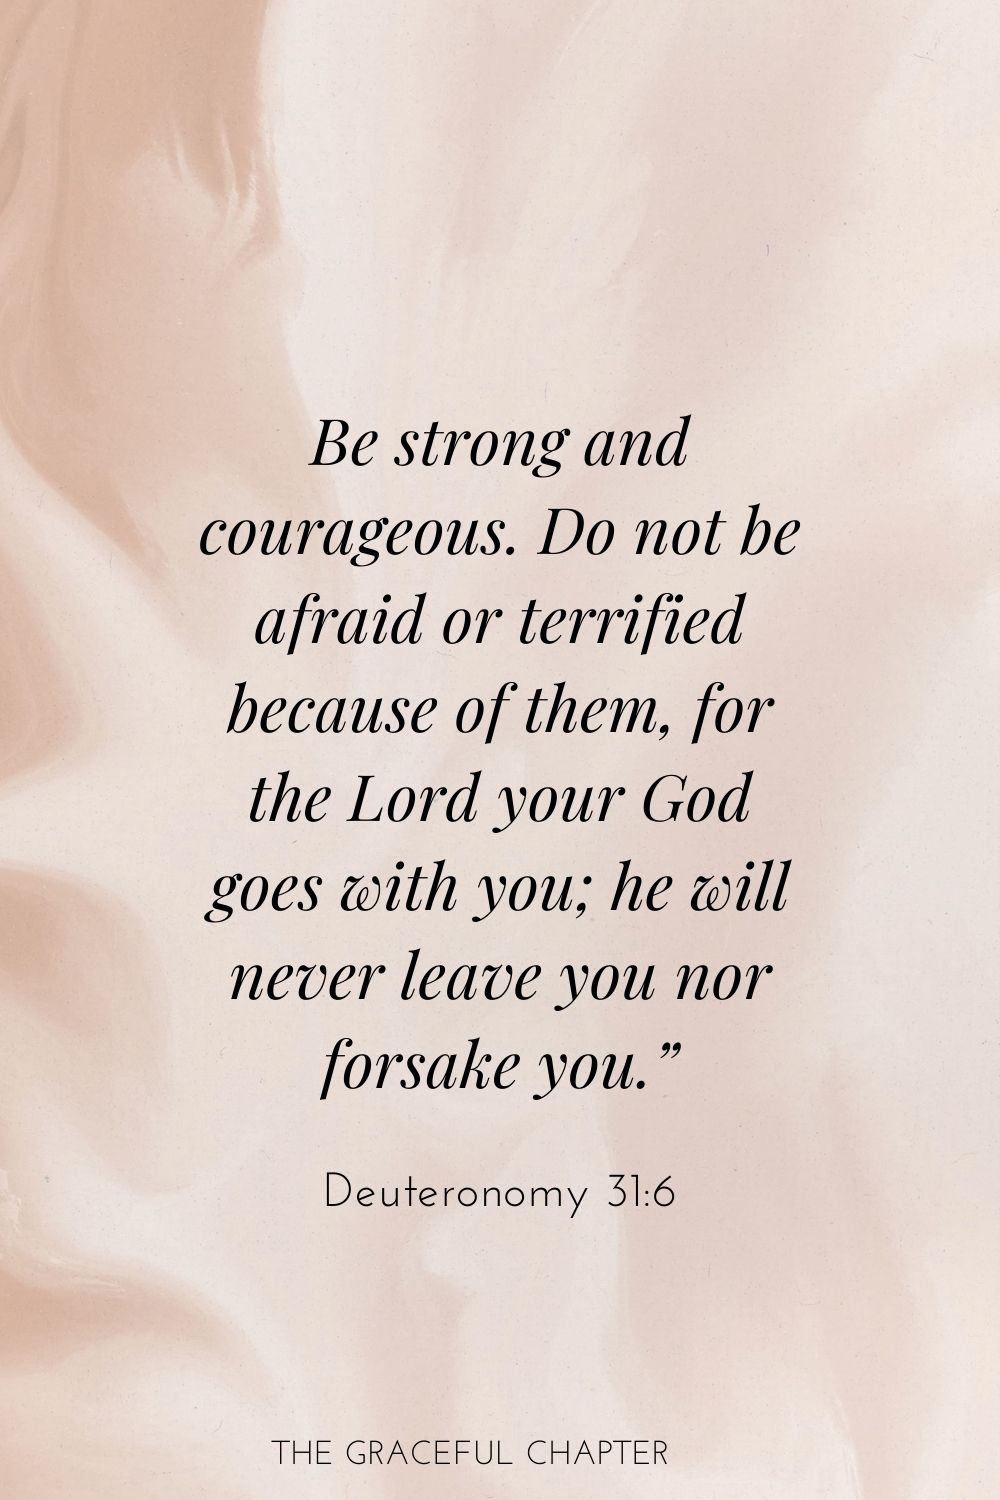 "Be strong and courageous. Do not be afraid or terrified because of them, for the Lord your God goes with you; he will never leave you nor forsake you."" Deuteronomy 31:6"